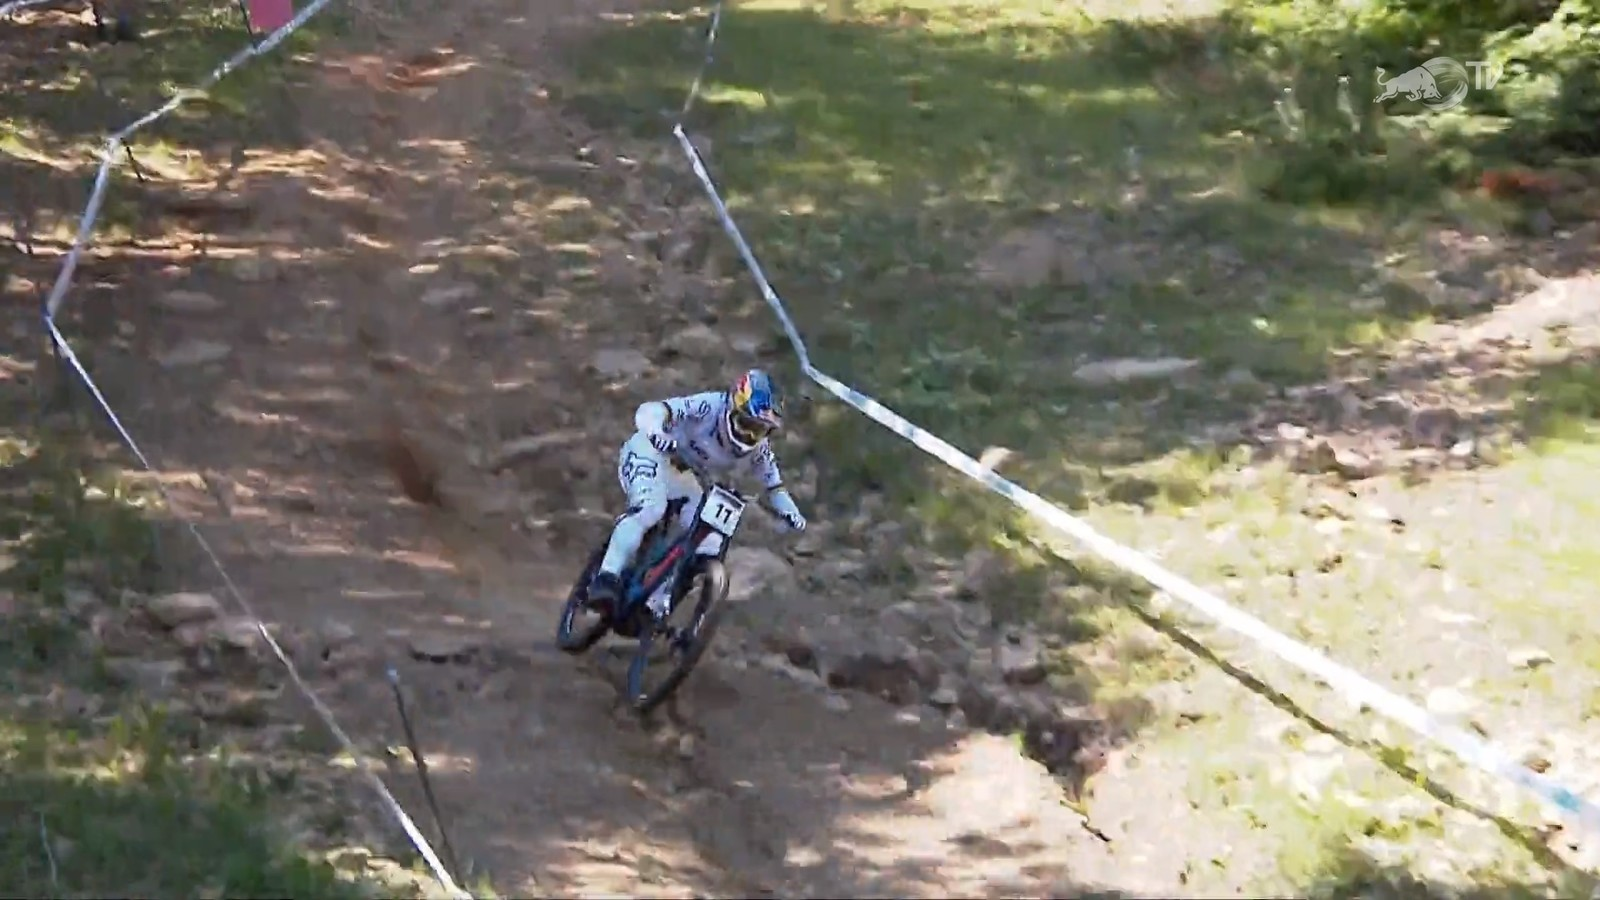 Finals Action from Mont-Sainte-Anne